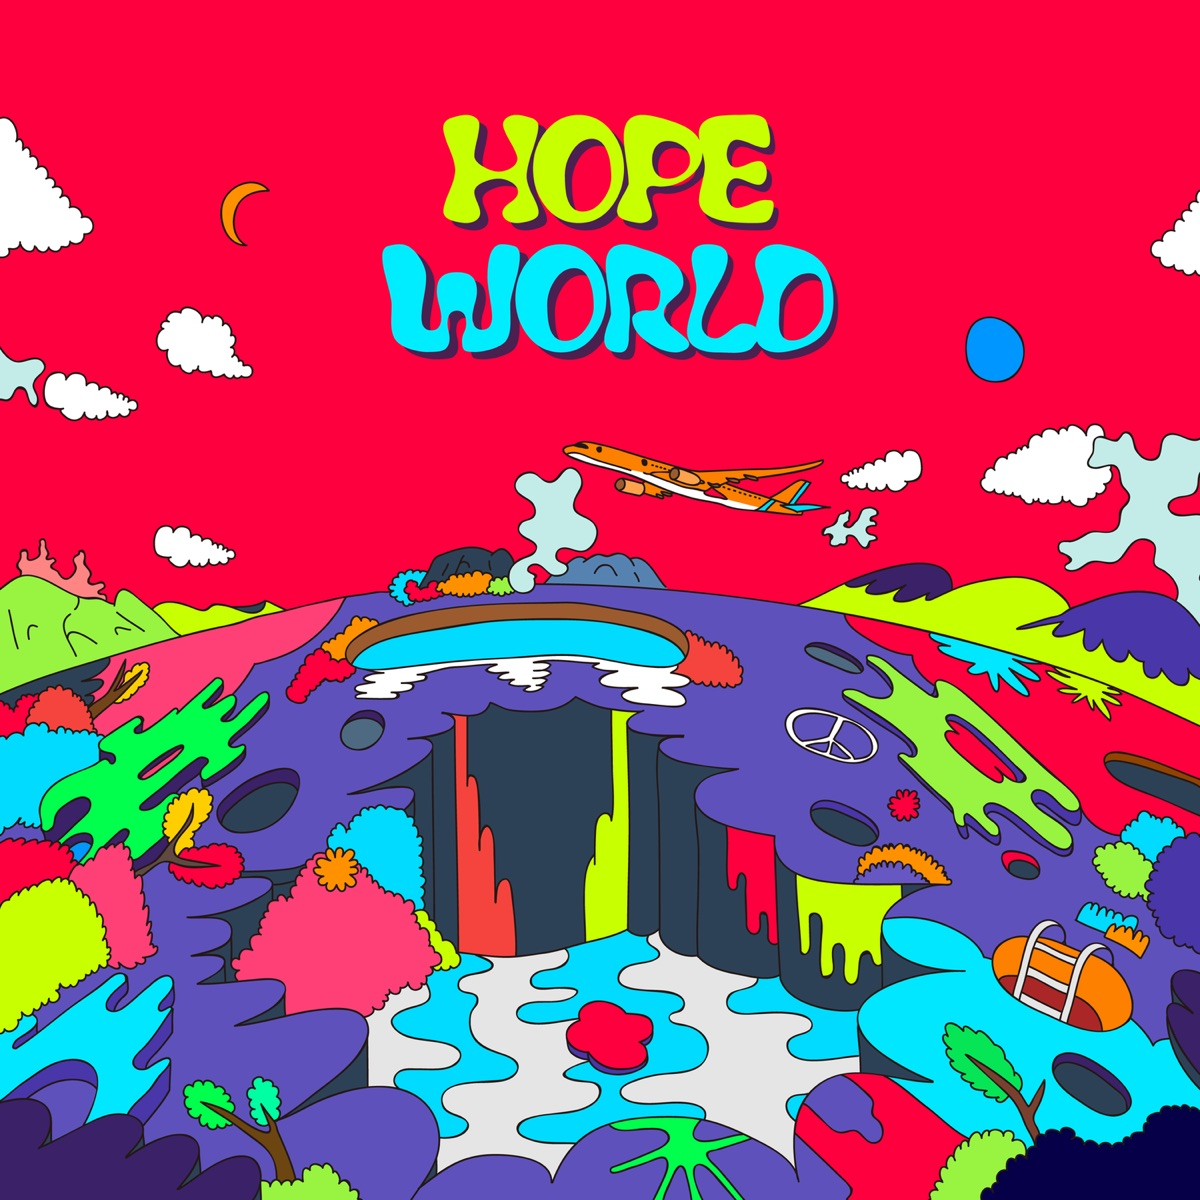 Hope World j-hope CD cover